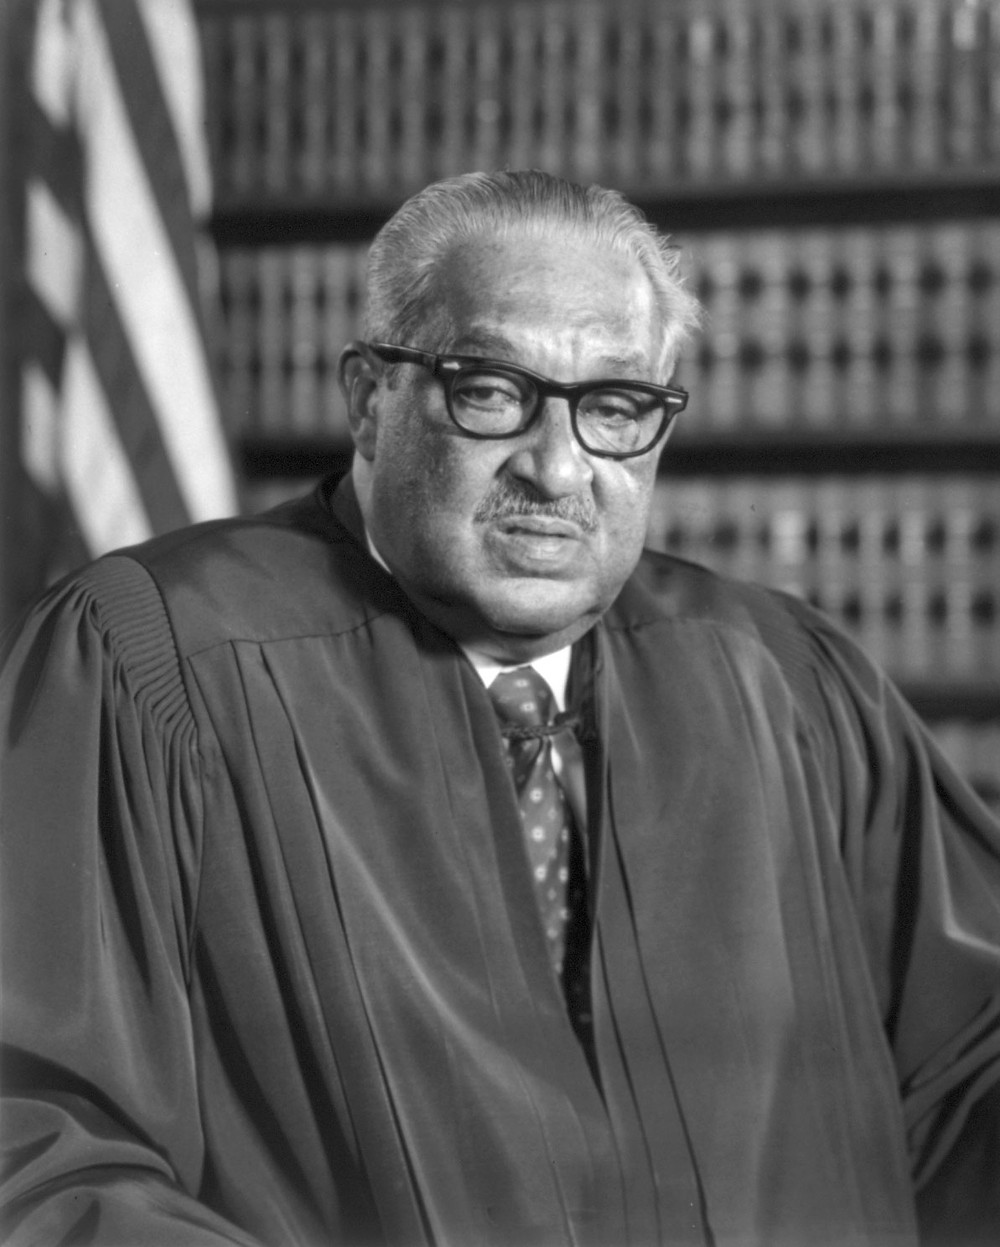 This is a black and white portrait of Thurgood Marshall, a Black man with short, gray hair. He's wearing judge's robes and glasses, and he's standing in front of a bookcase and an American flag.